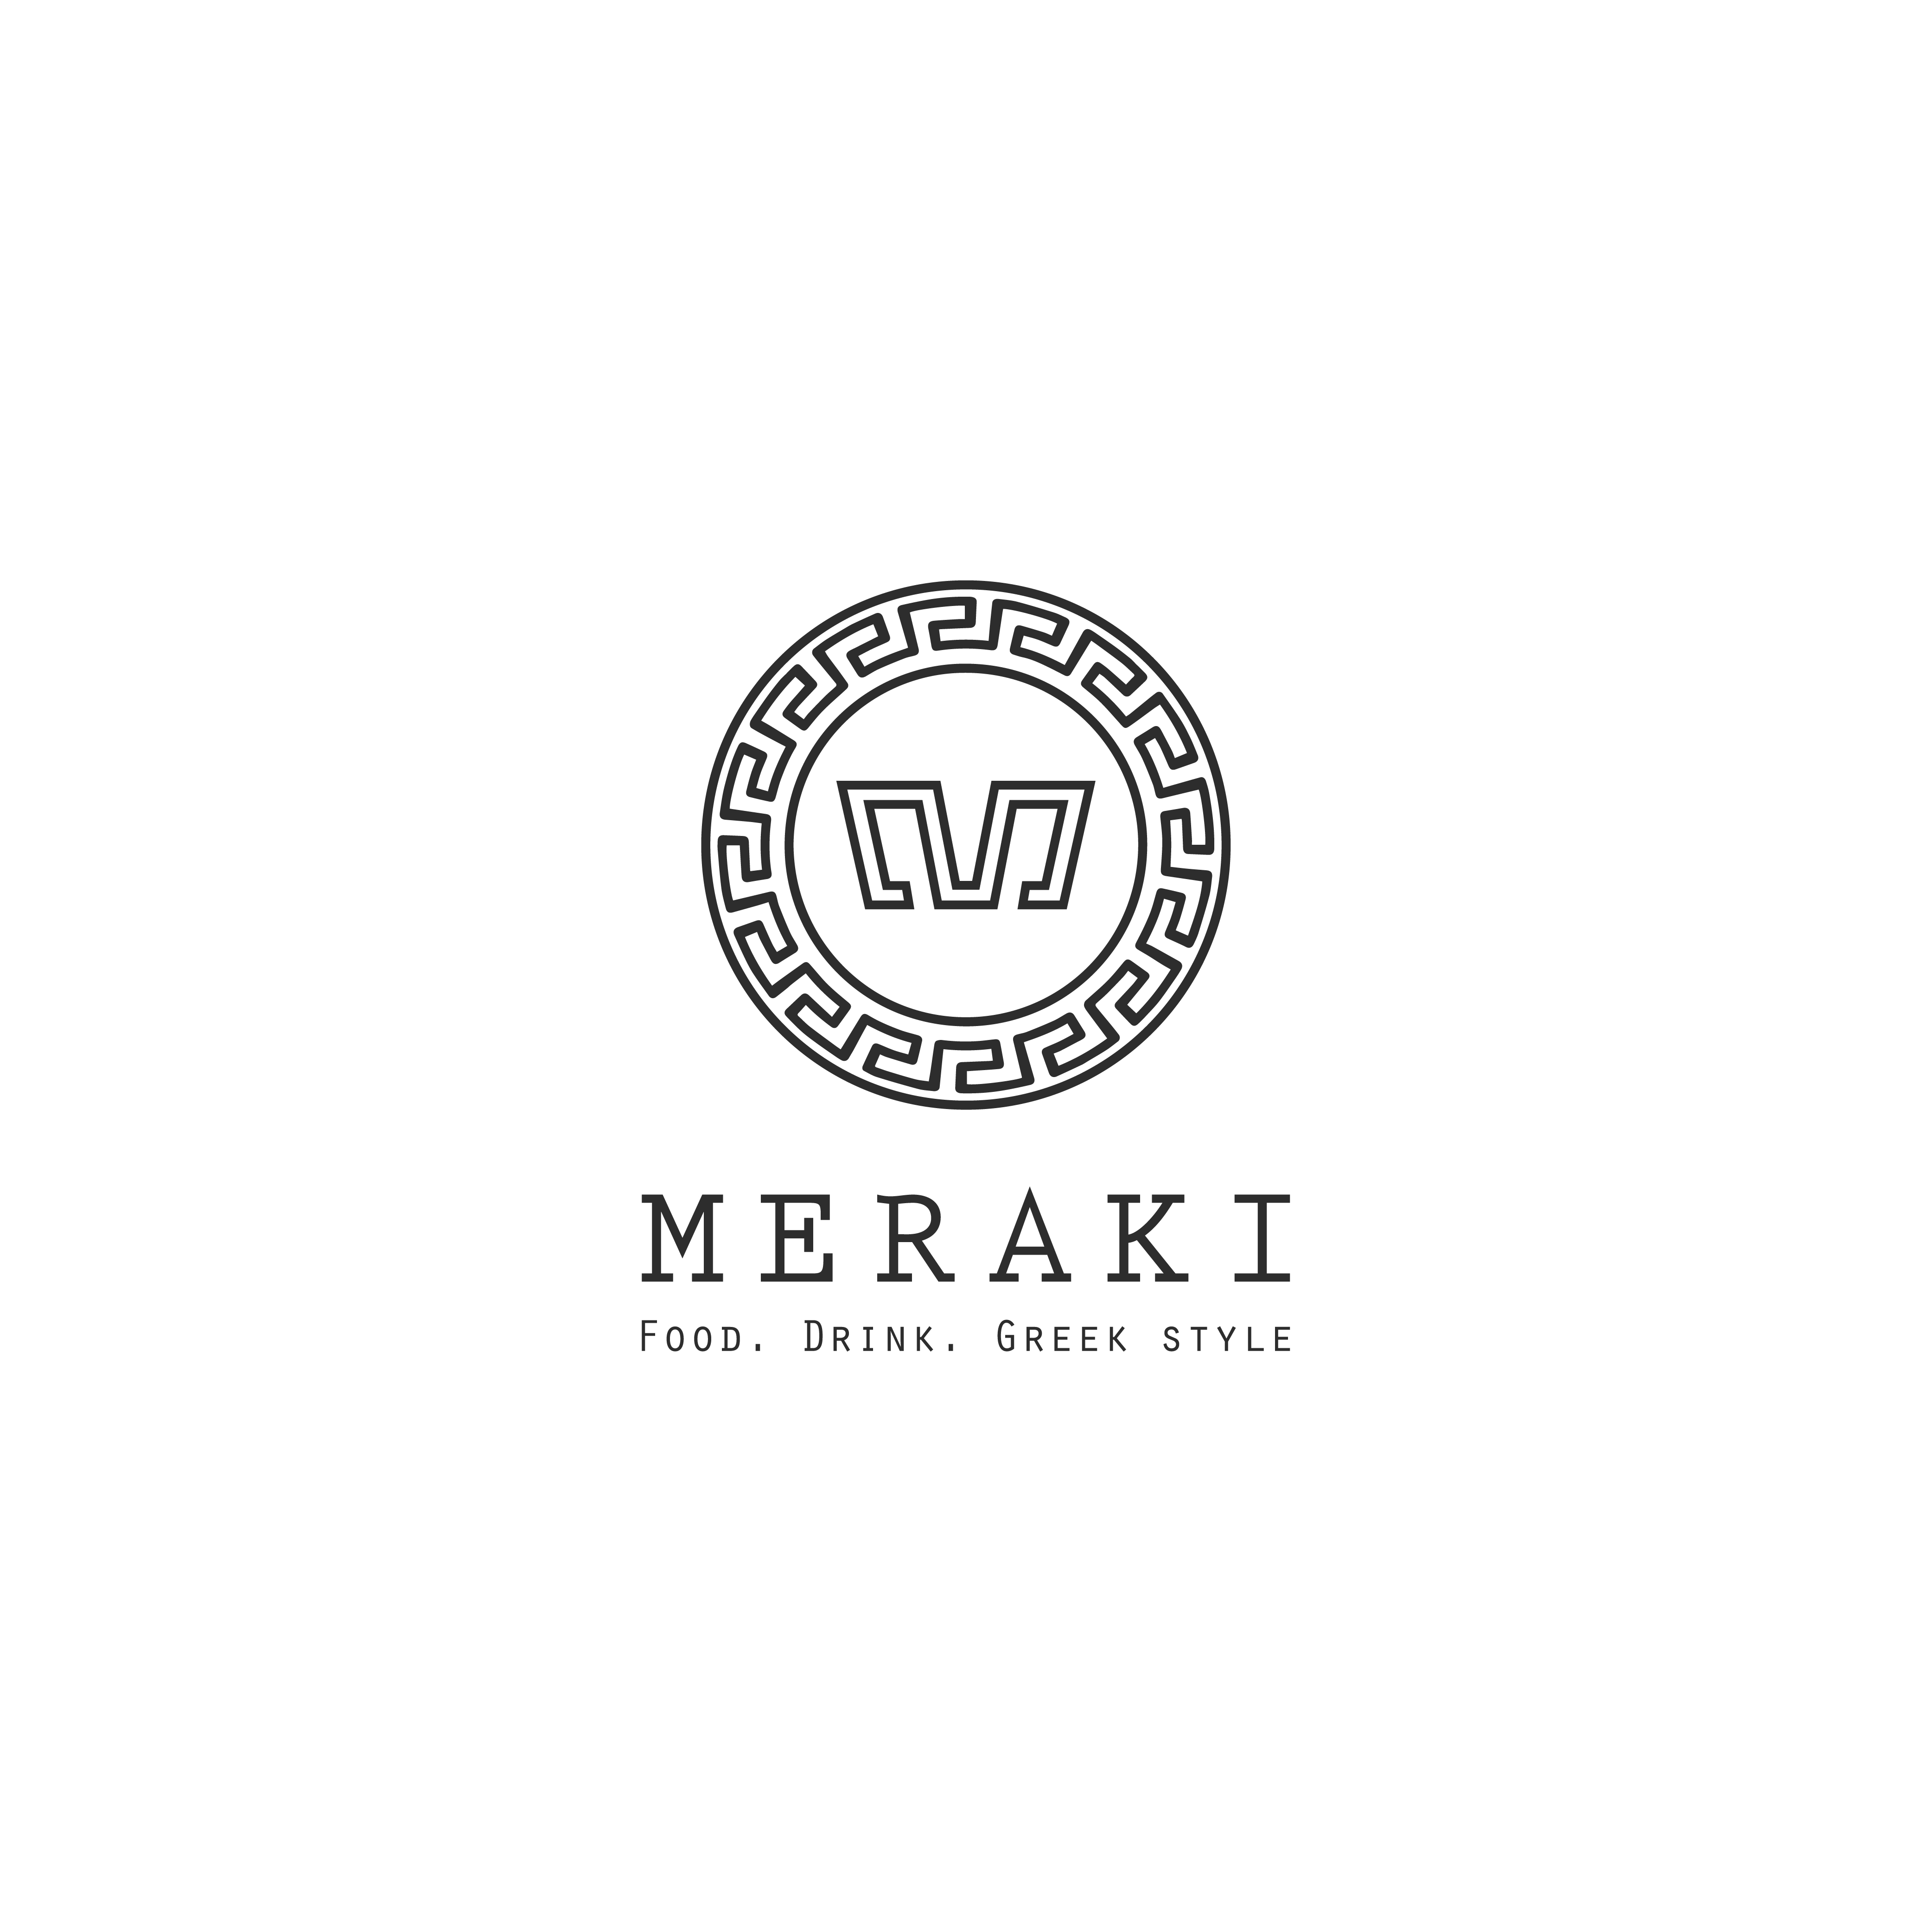 Elegant Playful Greek Restaurant Logo Design For Meraki Food Drink Greek Style By Rameez Remy Design 20358856